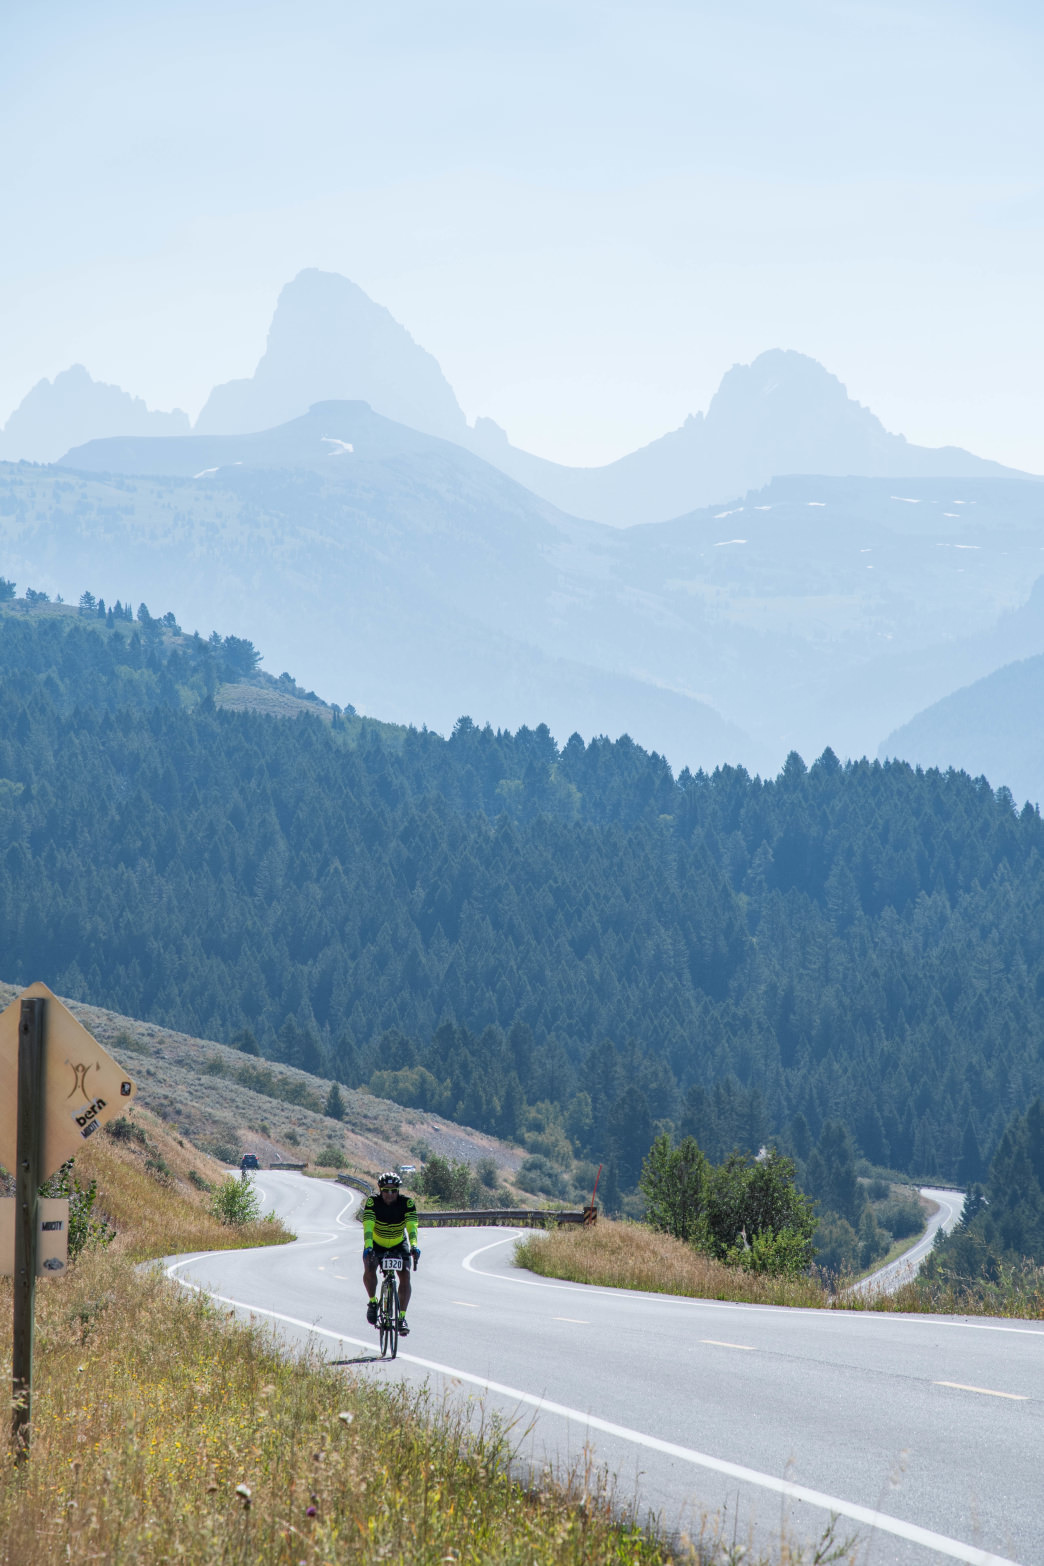 It's a ride, not a race, so take your time and enjoy the scenery.Cycle Greater Yellowstone